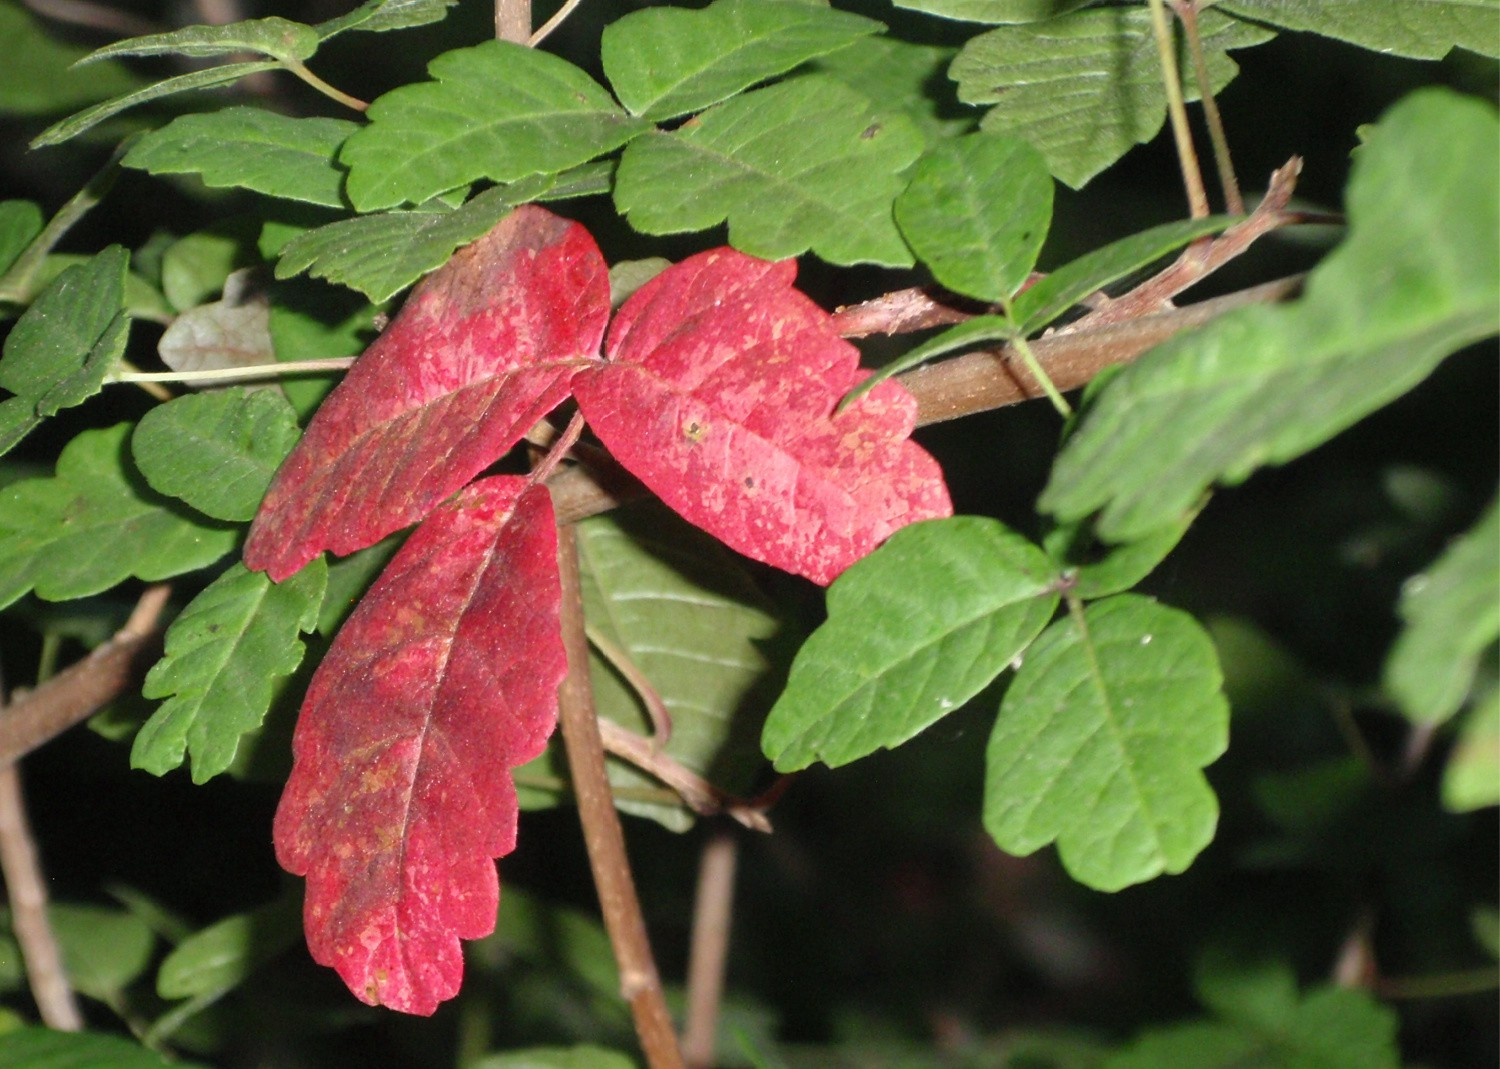 Cccclose-up of red and green poison oak leaves in October